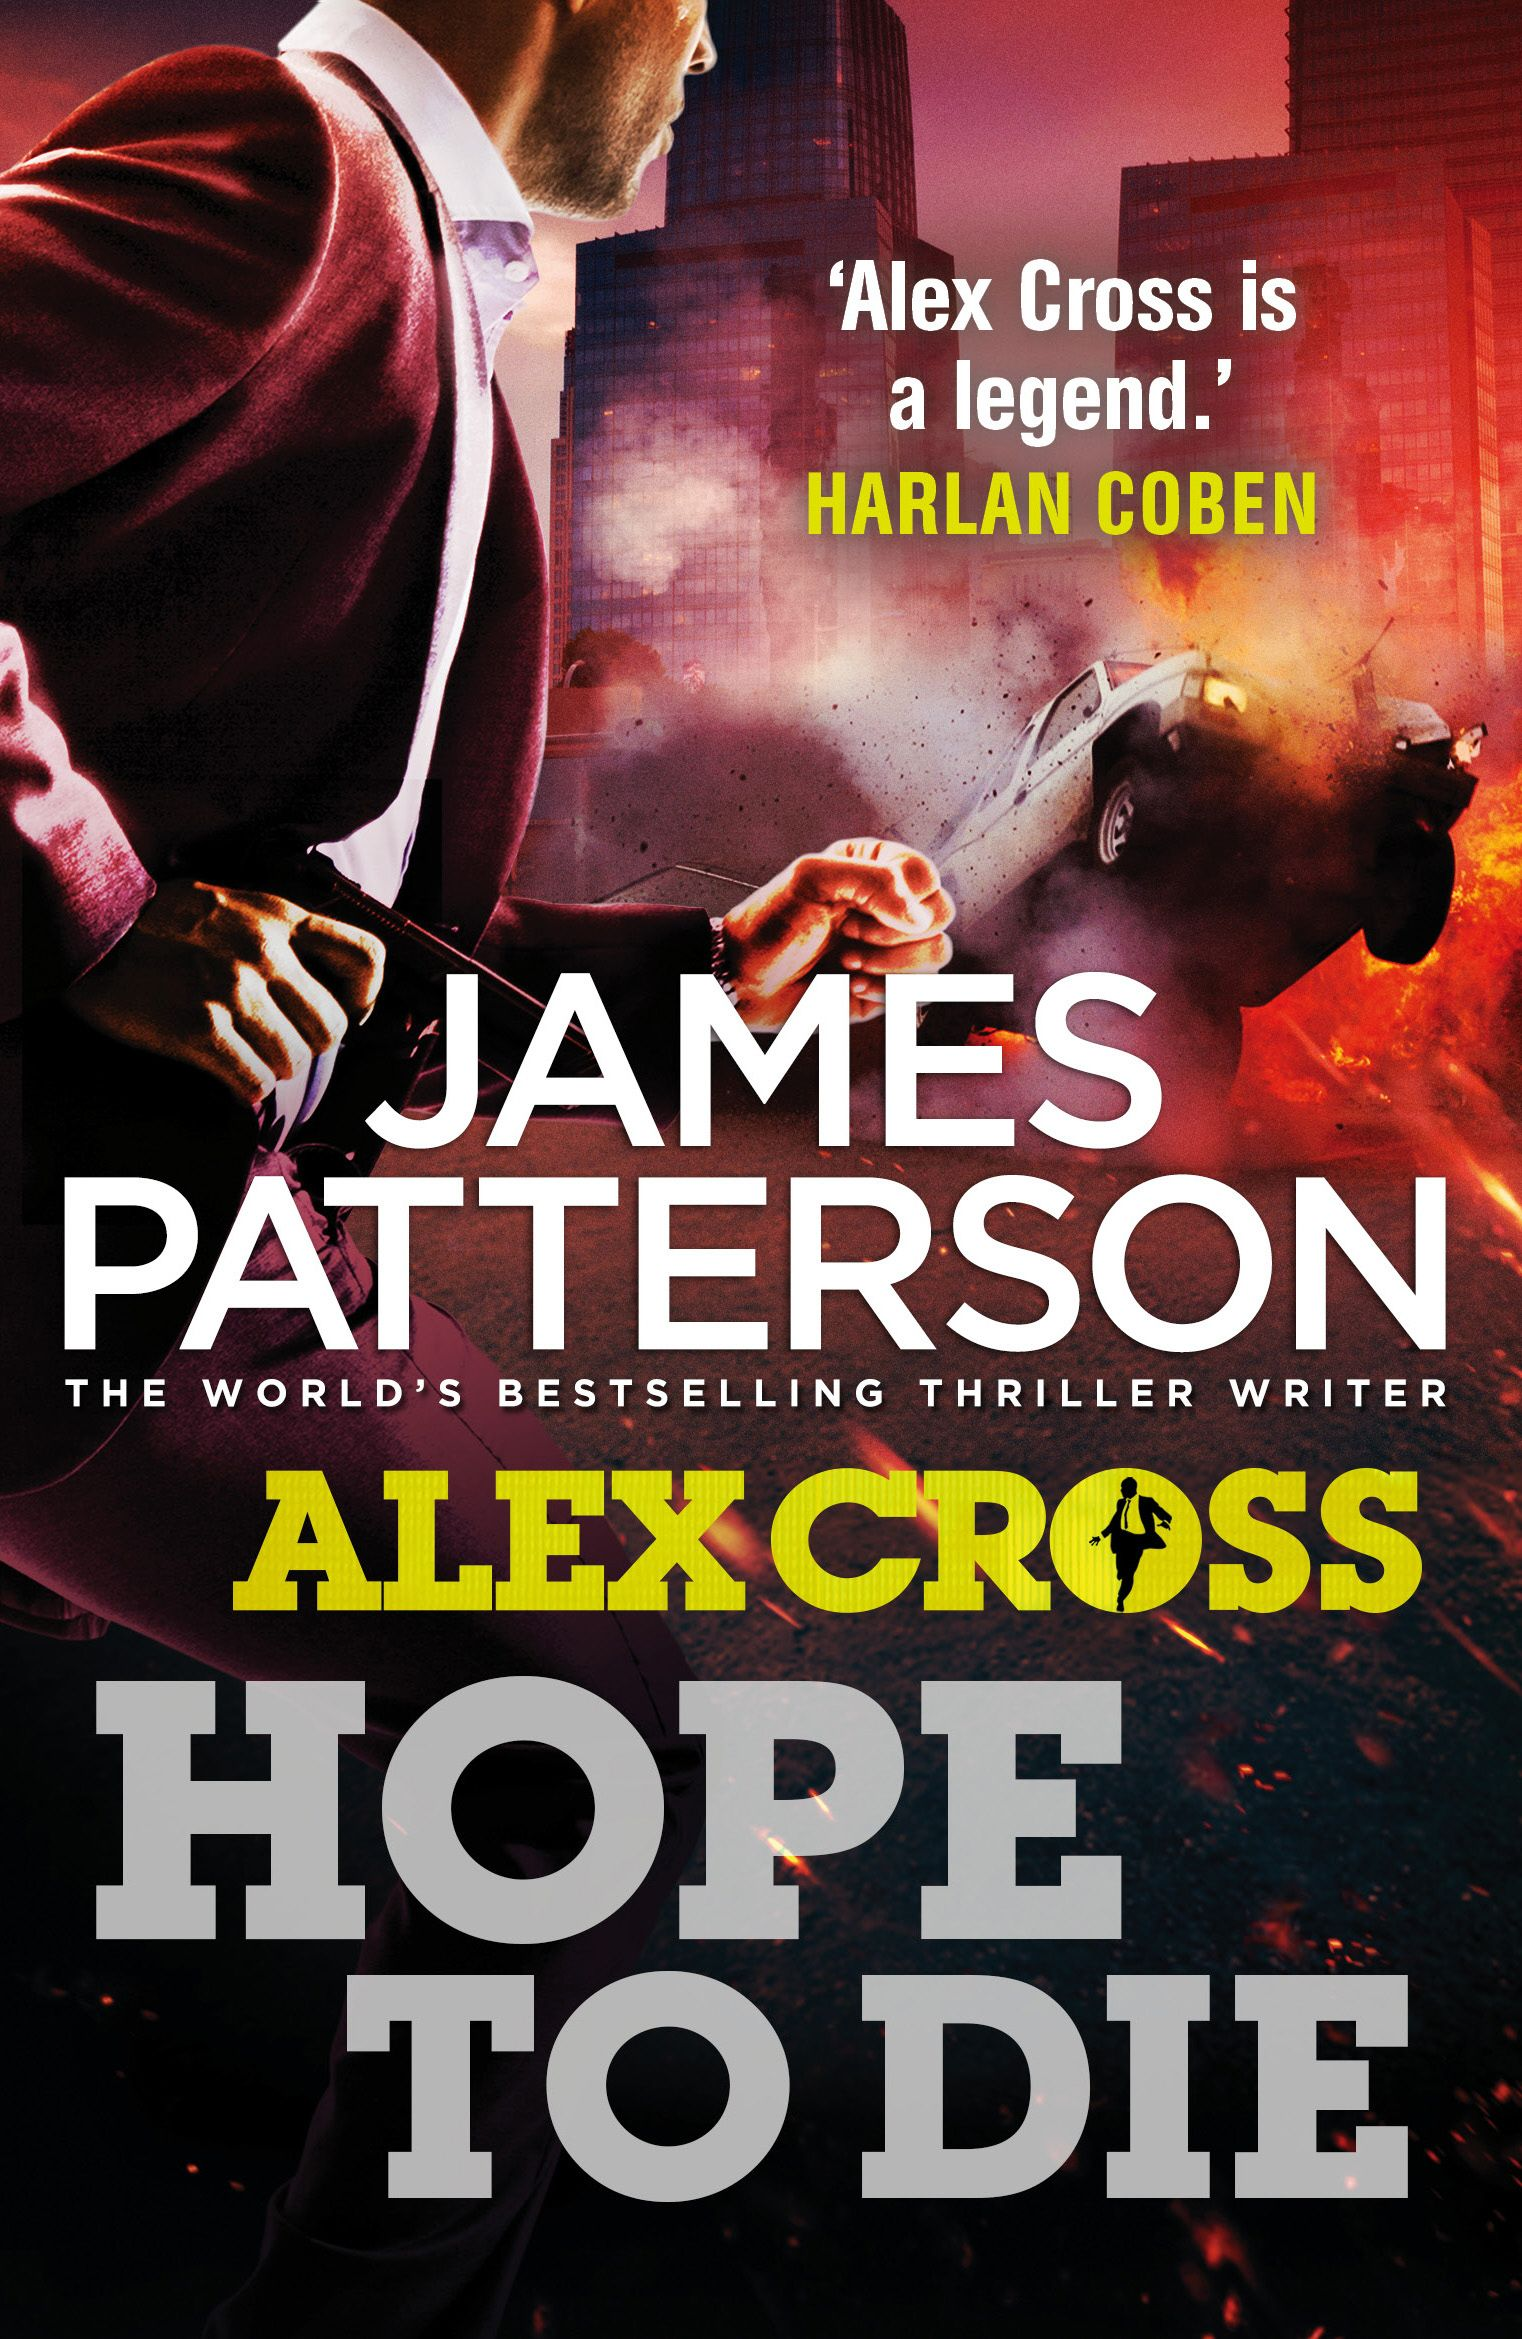 Detective Alex Cross Is Being Stalked By A Psychotic Genius, Forced To Play  The Deadliest